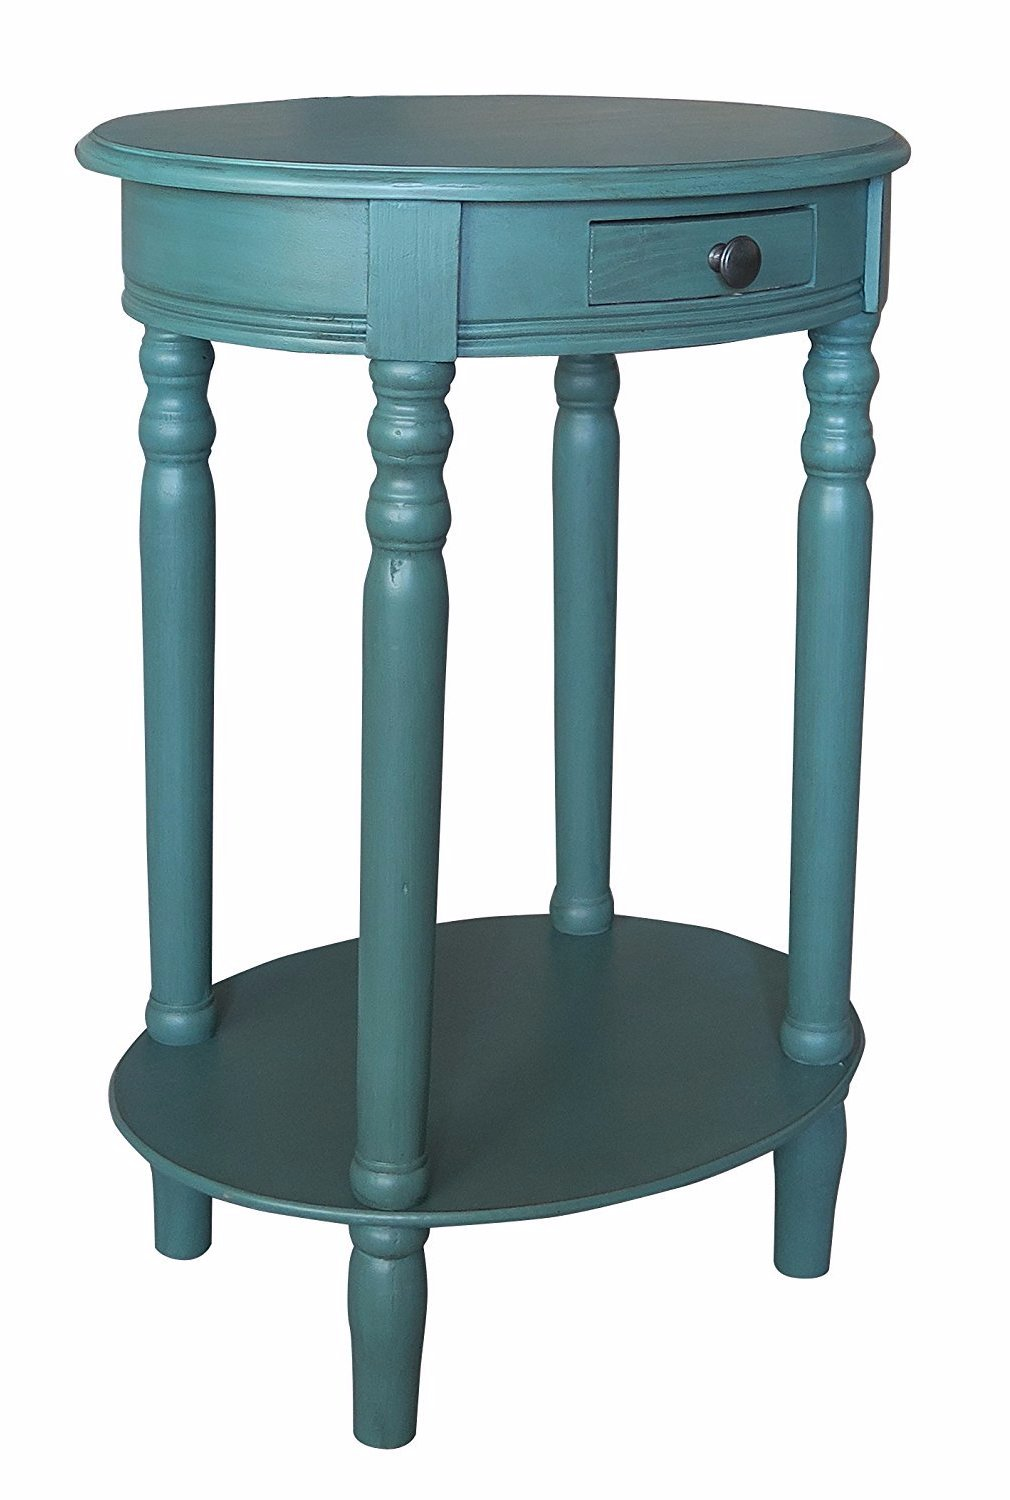 Woodbury Oval Accent Table With Drawer   6 Finishes